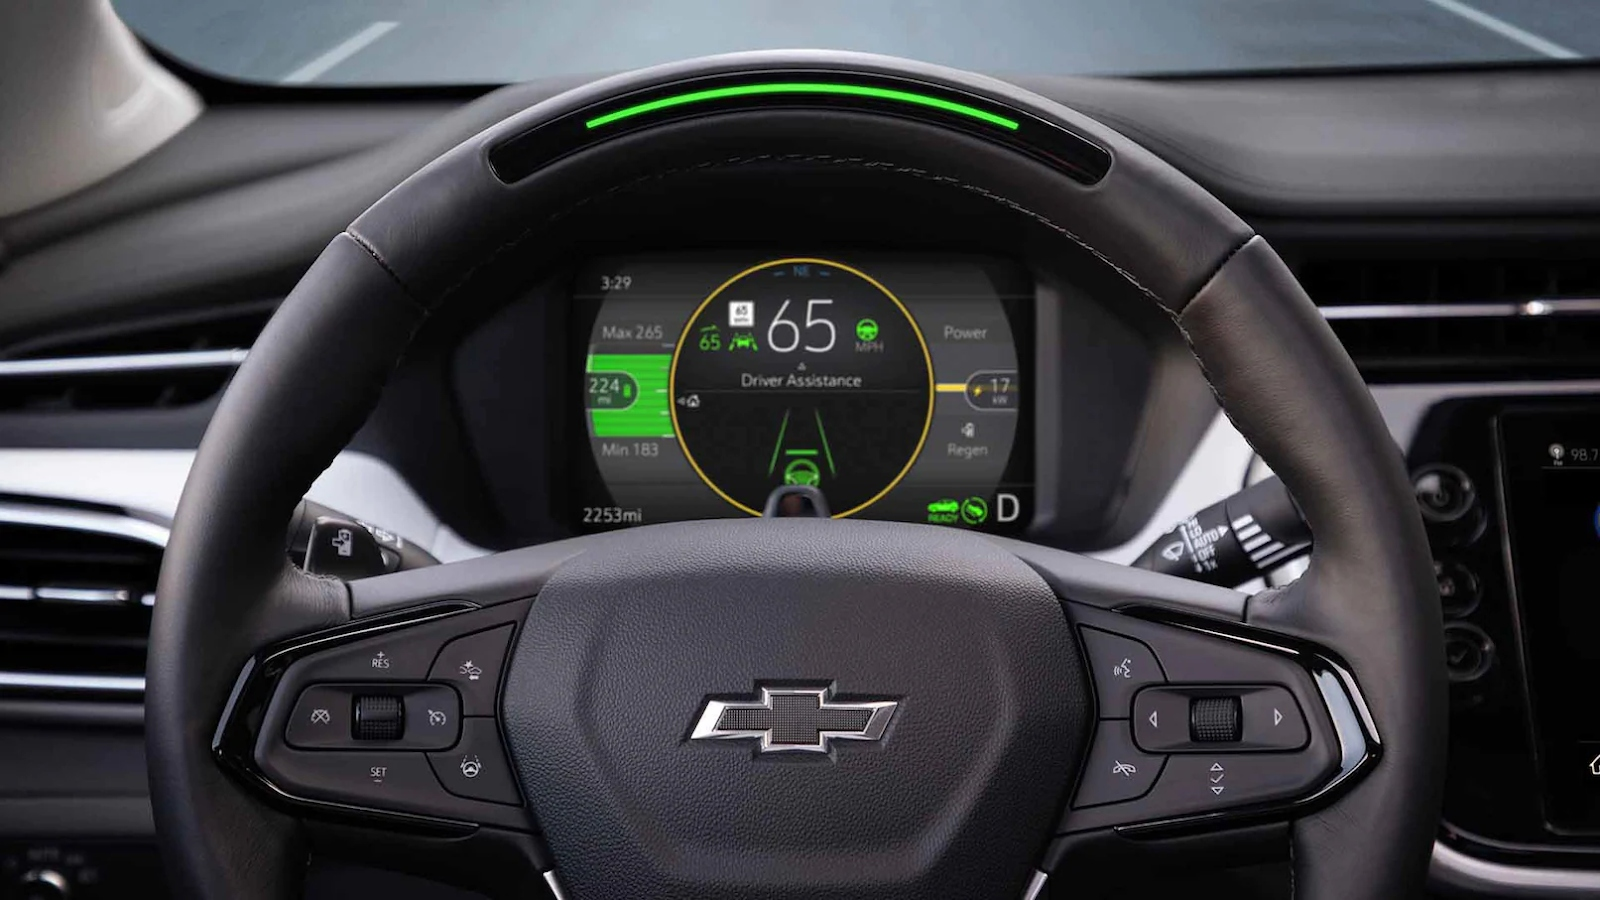 General Motors Says That Their Super Cruise System Will Upgrade With Lane Changes and More